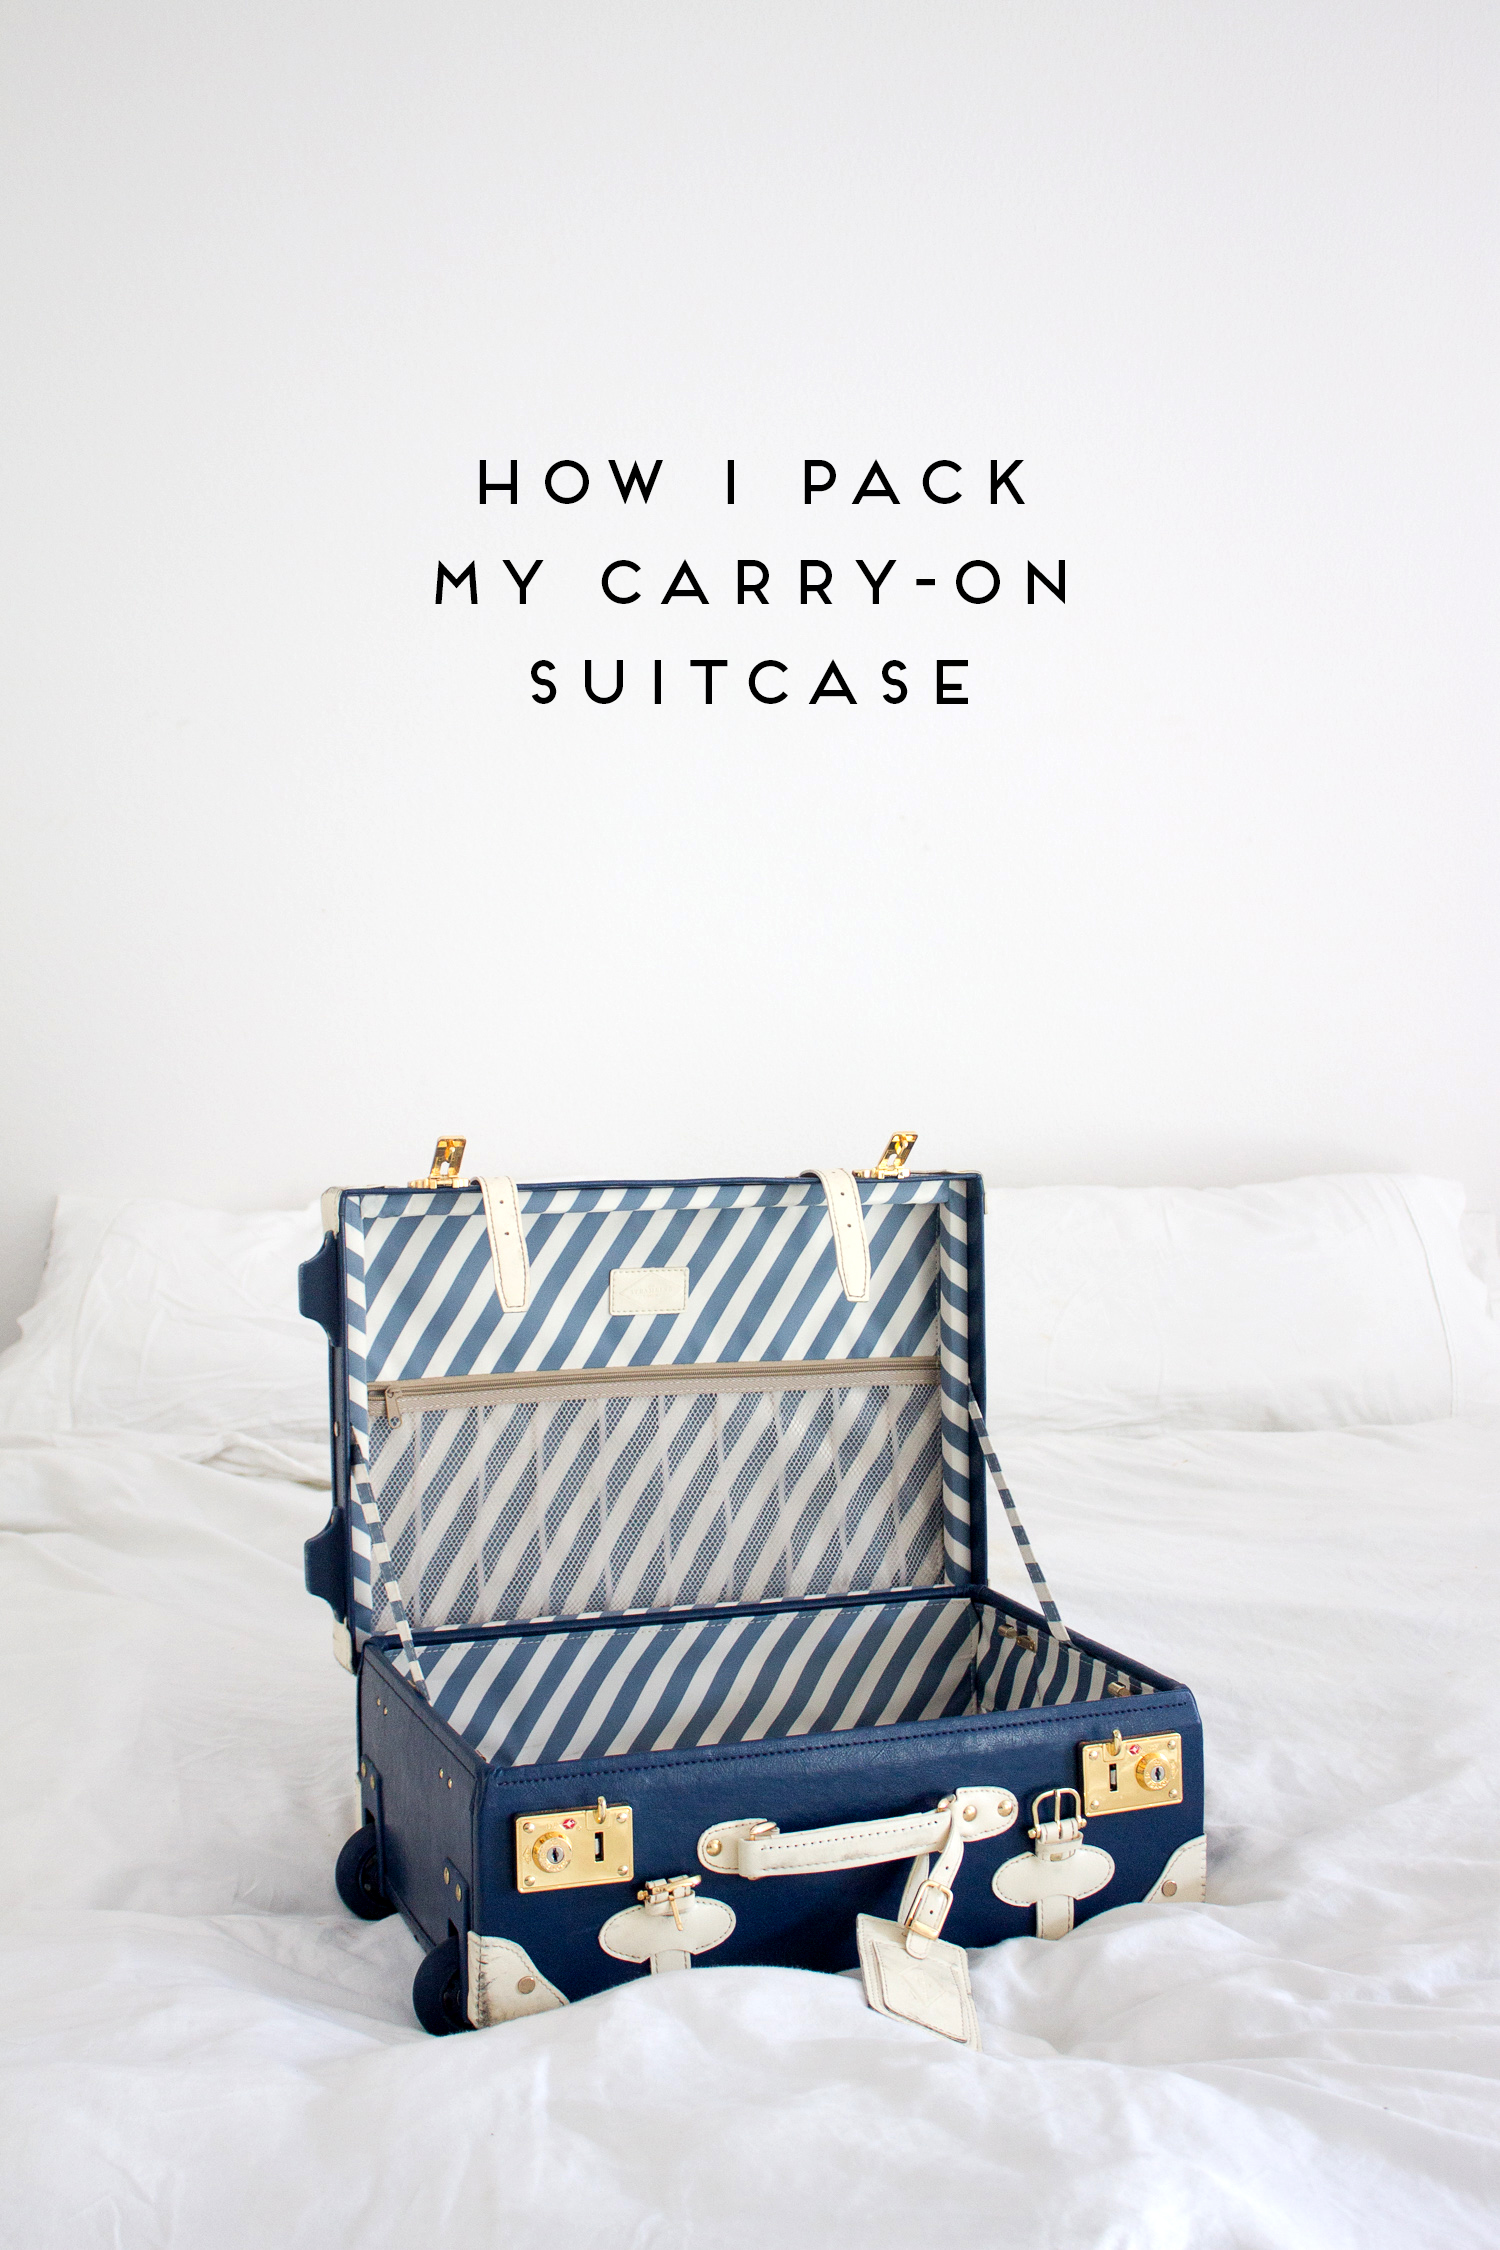 how i pack my carry-on suitcase